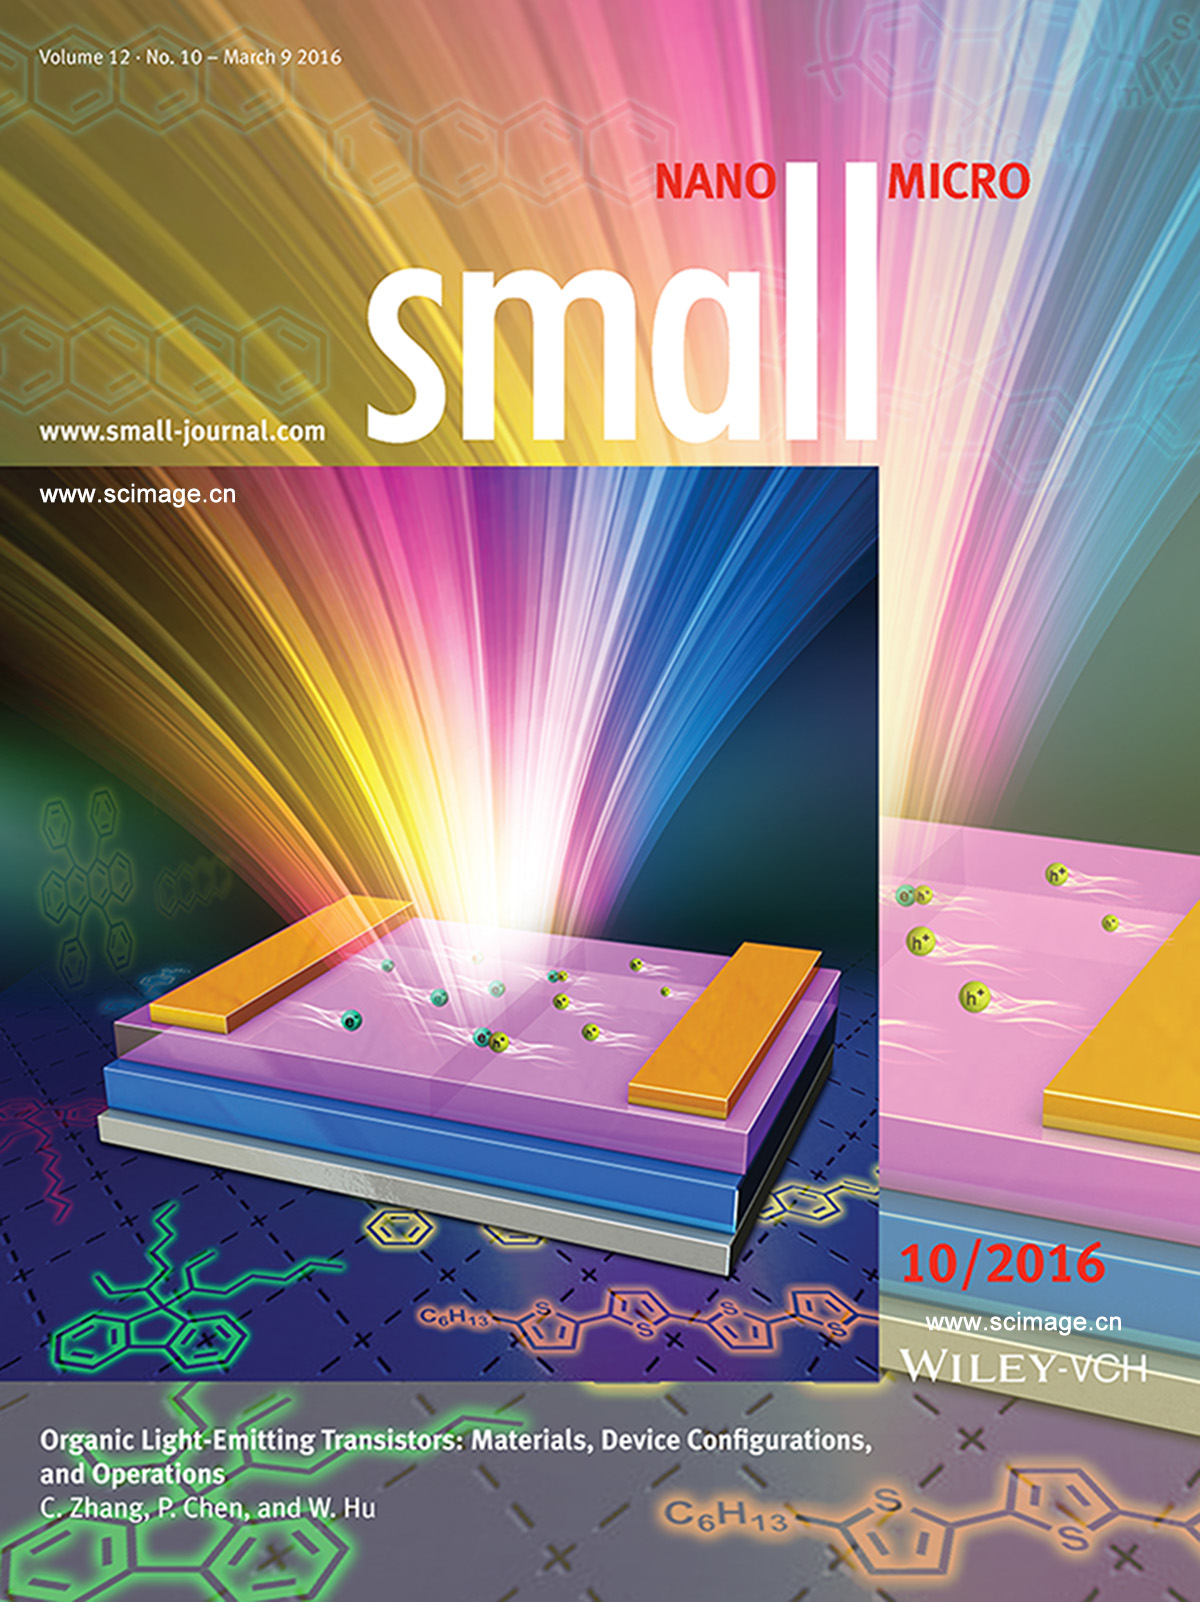 Organic Light-Emitting Transistors: Organic Light-Emitting Transistors: Materials, Device Configurations, and Operations (Small 10/2016) (page 1392)